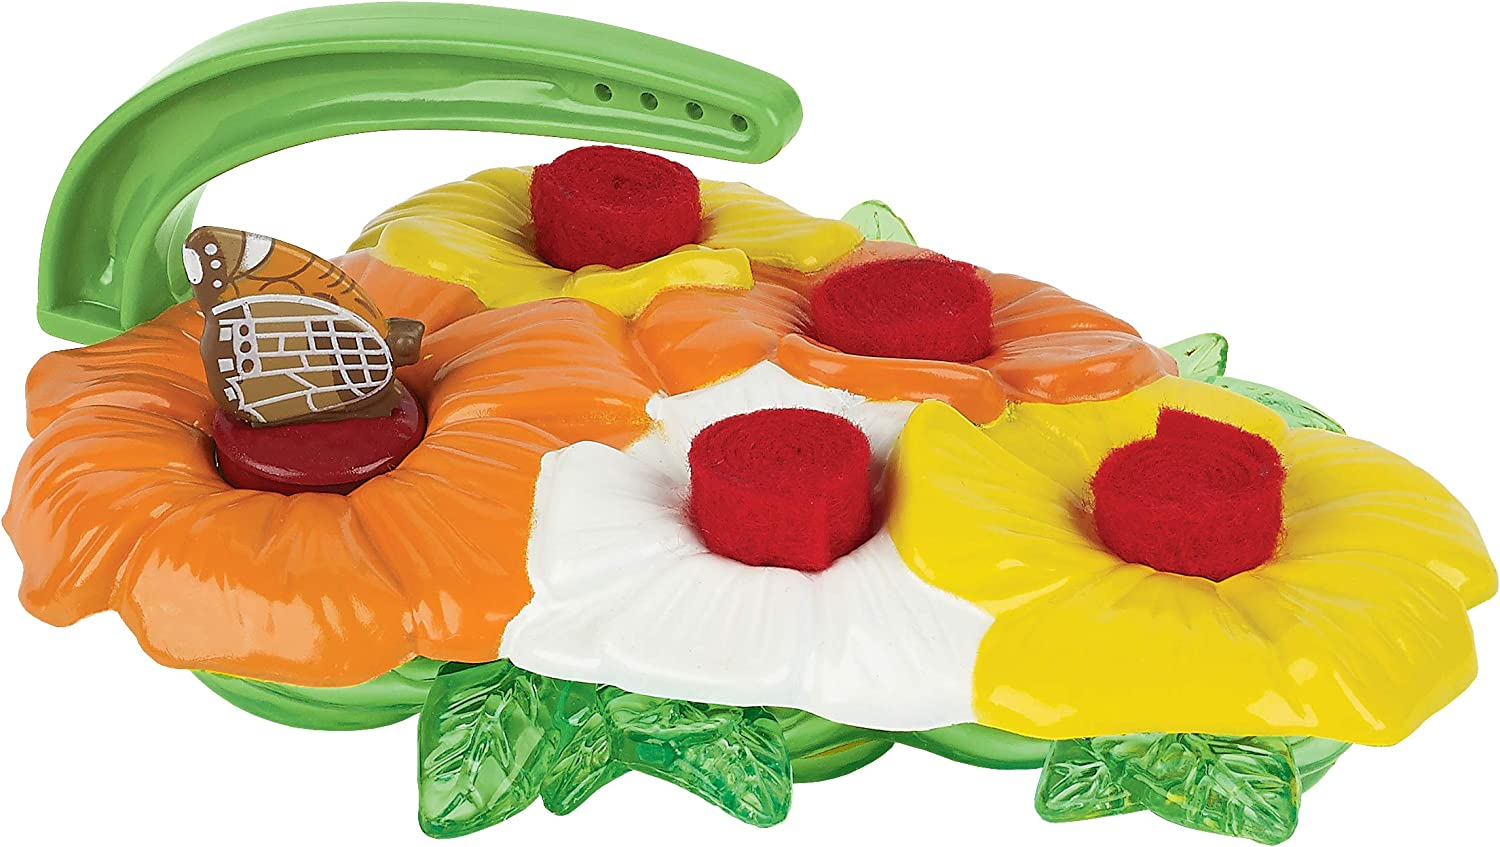 Butterfly Feeder Kit – Garden Toy Includes Nectar Reservoirs, Butterfly Landing Pads, and Red Nectar Wicks